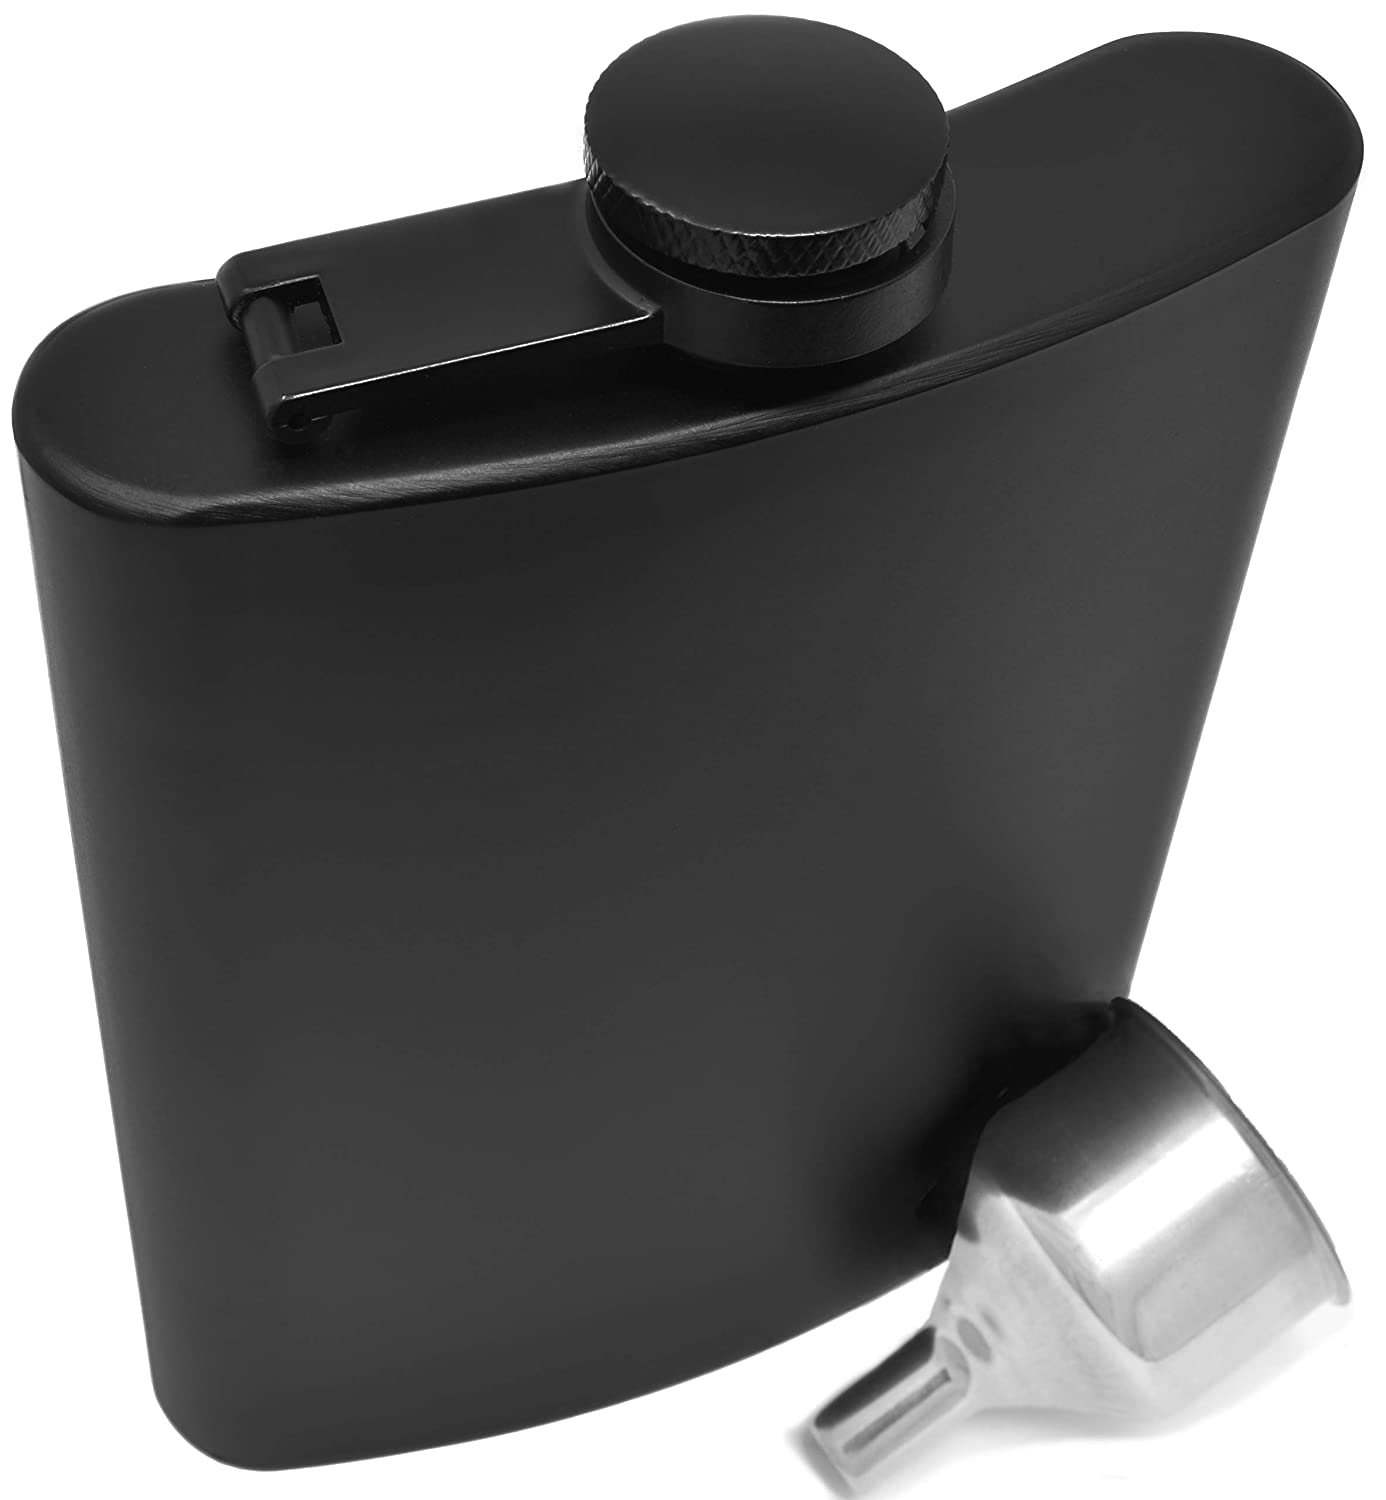 最愛 Hip Flask For Liquor 240ml Liquor Stainless Premium Steel Perfecting Matte Black Leakproof in Premium Gift Box With Big Funnel For Men & Women for Perfecting Your Drinking Experience by IDALIO B07CBF7DVB, rayon:76b517e2 --- a0267596.xsph.ru